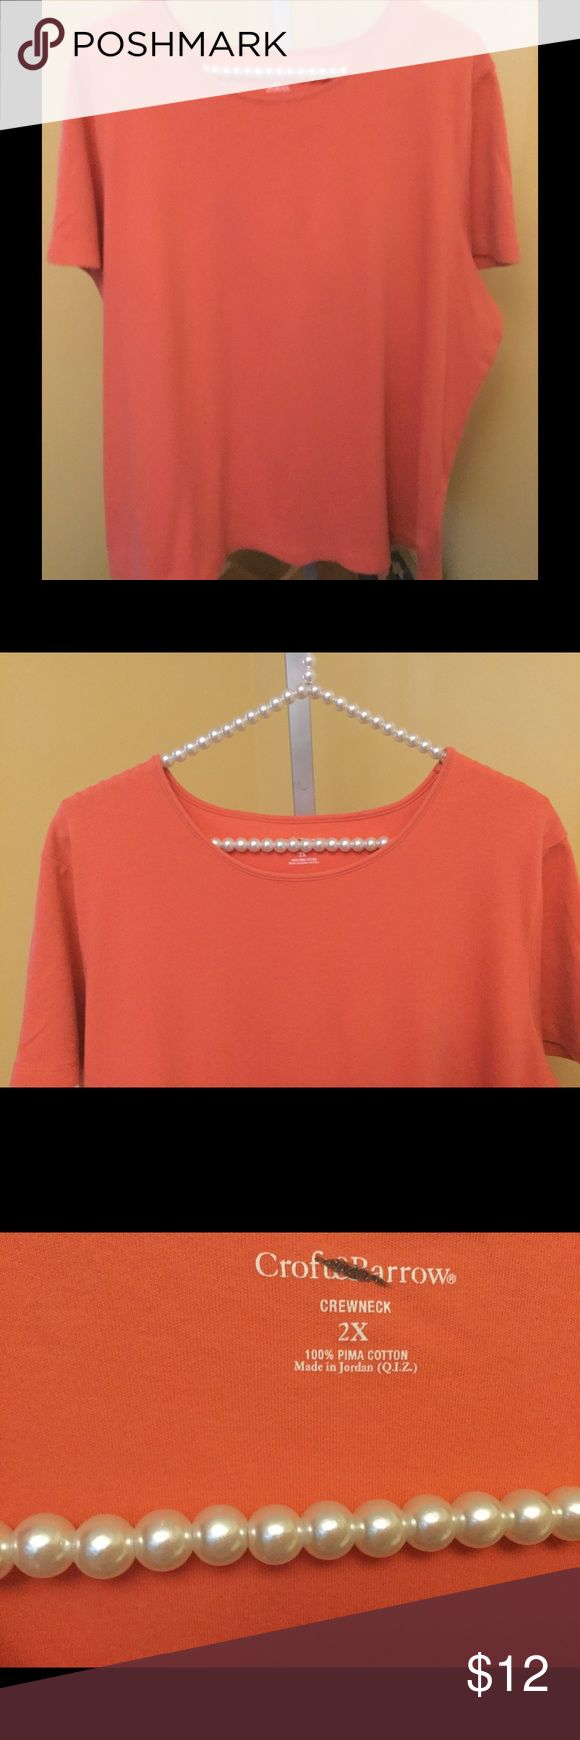 Comfy Orange Blouse Comfy Orange Blouse  Nice blouse crew neck would look cute with a pair of capris! Like new freshly laundered! Con-701                              ♡GOD BLESS♡                    ☆BUNDLE AND SAVE 5%☆              ♡ASK I WILL REPLY PROMPTLY♡       ☆SHARE & FOLLOW I WILL DO THE SAME☆    ☆REASONABLE OFFER'S ALWAYS WELCOMED☆ croft & barrow Tops Blouses